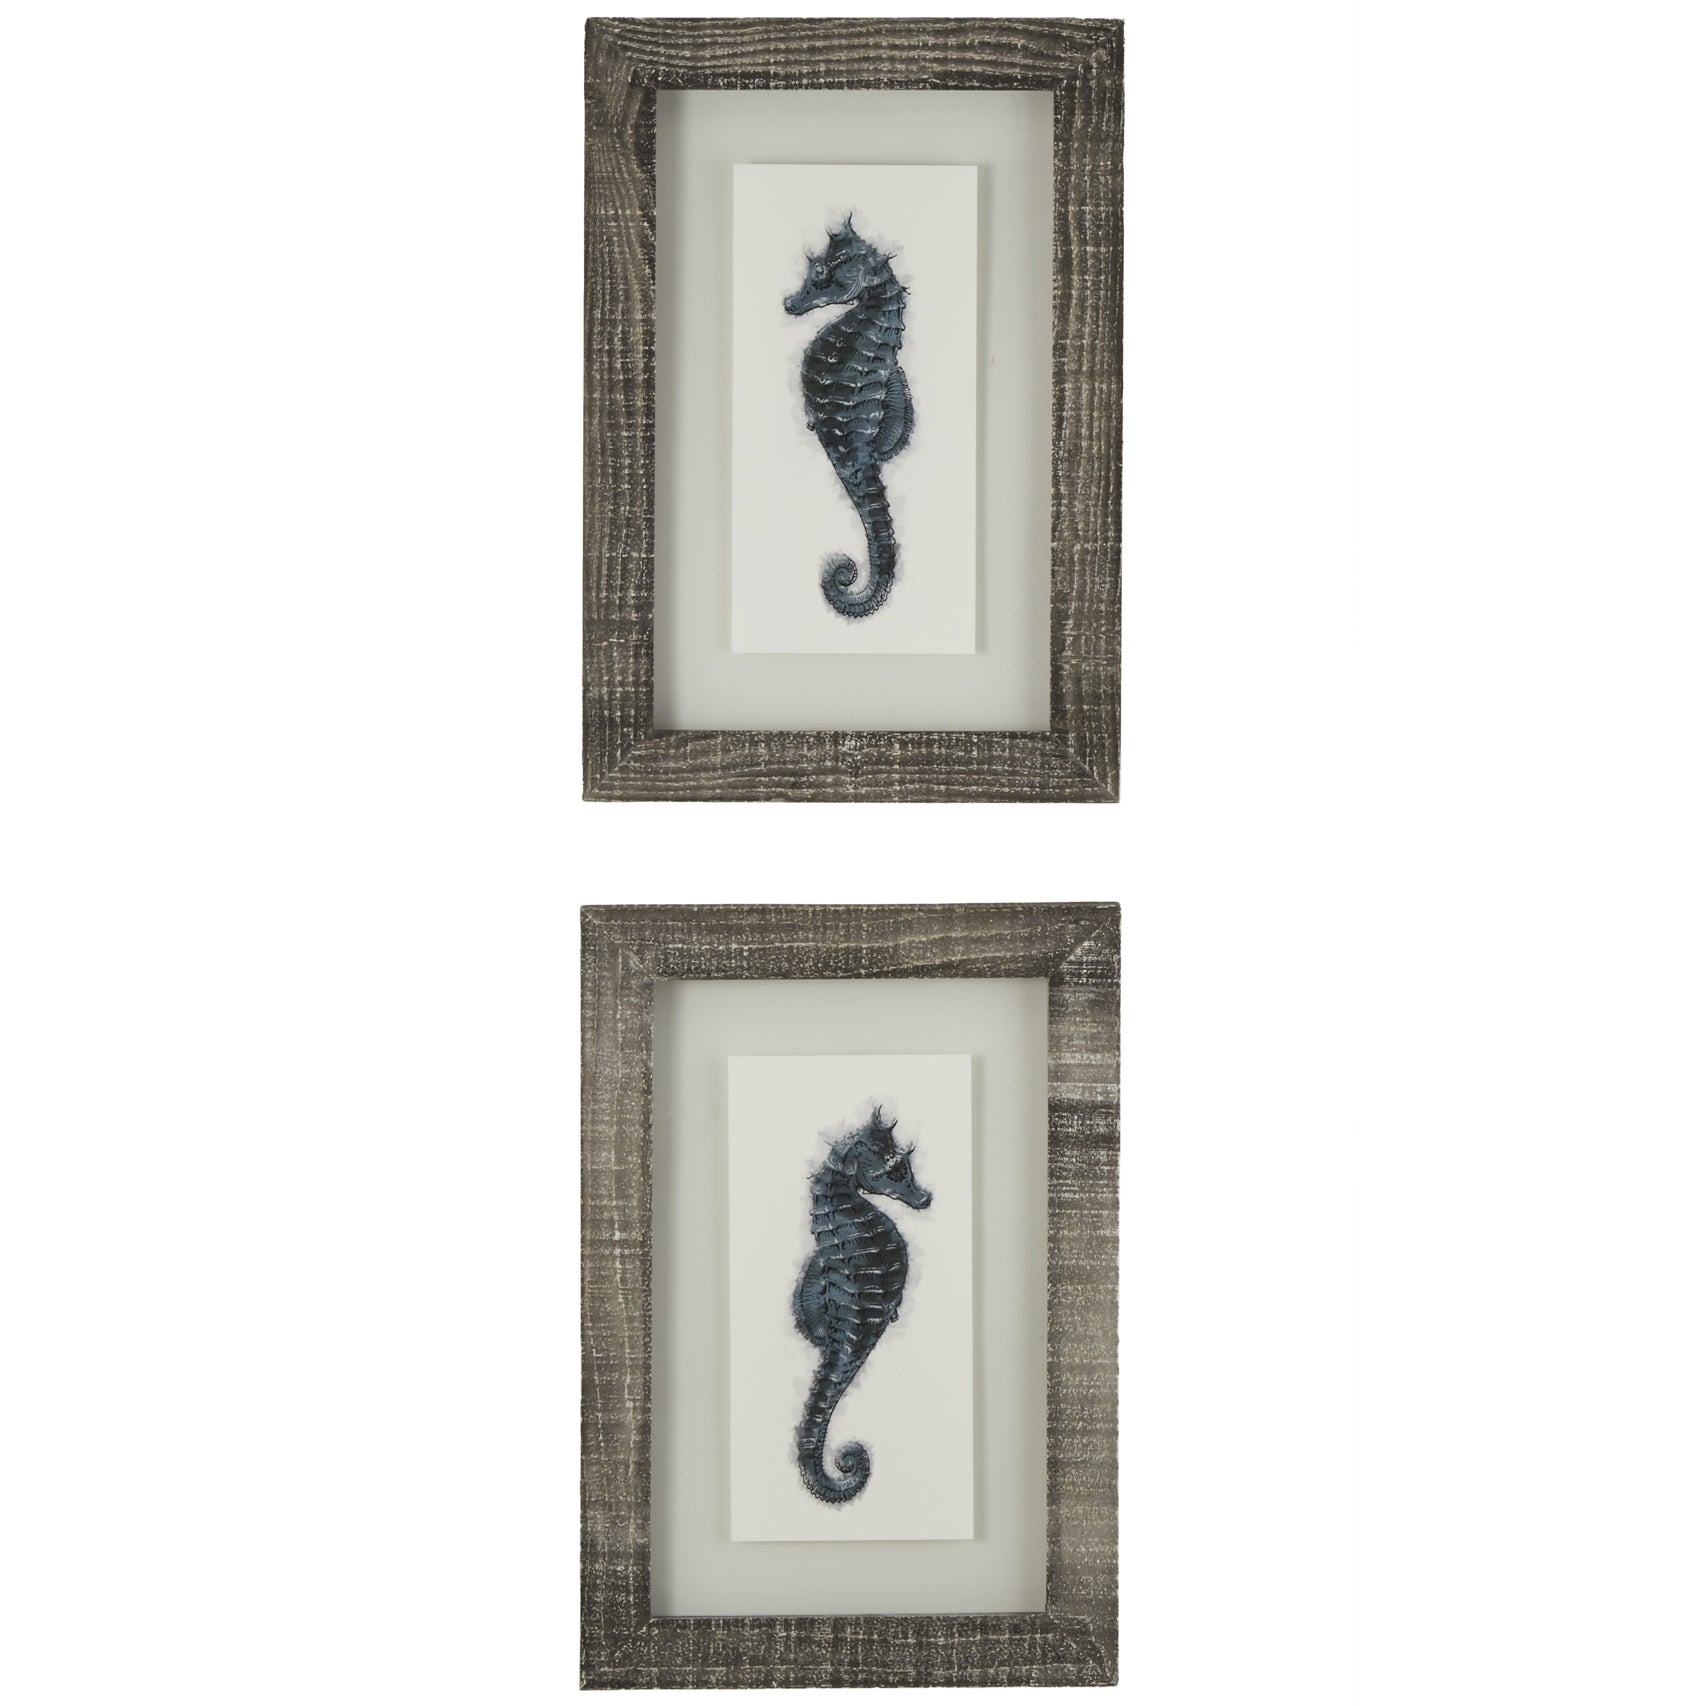 Sea Horses Framed Giclee Print Wall Art with Glass (Set of 2)